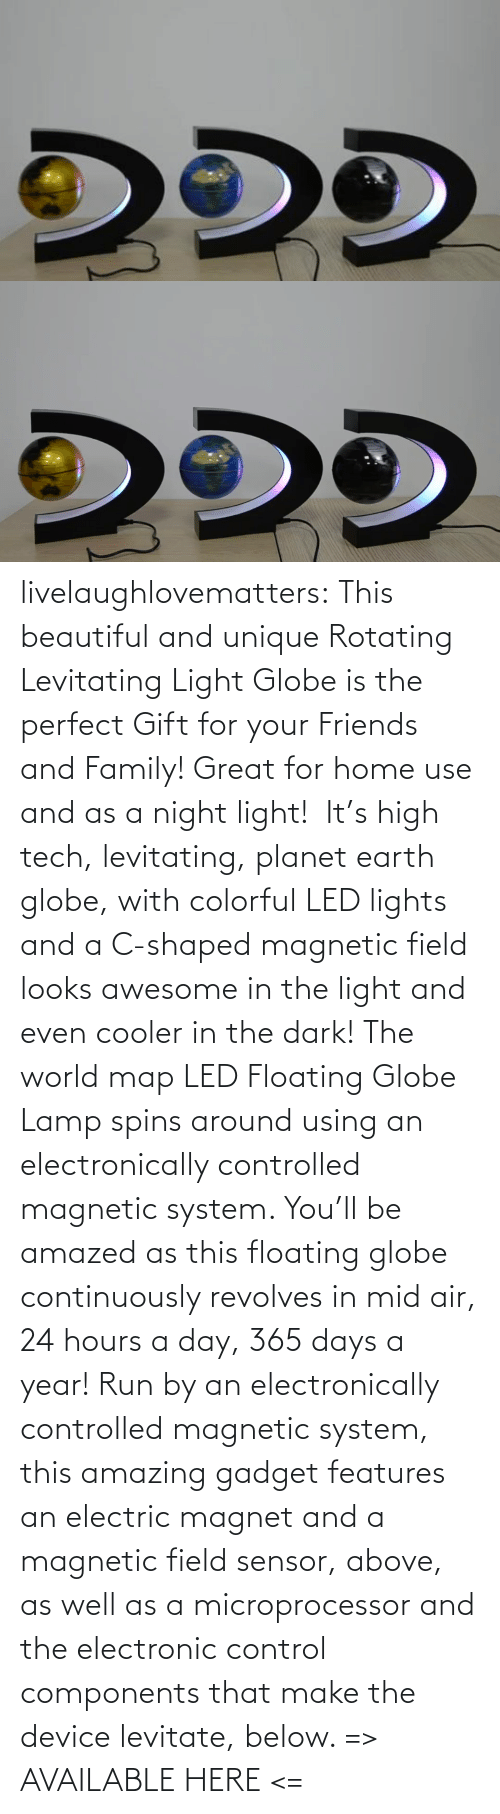 Run: livelaughlovematters: This beautiful and unique Rotating Levitating Light Globe is the perfect Gift for your Friends and Family! Great for home use and as a night light!  It's high tech, levitating, planet earth globe, with colorful LED lights and a C-shaped magnetic field looks awesome in the light and even cooler in the dark! The world map LED Floating Globe Lamp spins around using an electronically controlled magnetic system.  You'll be amazed as this floating globe continuously revolves in mid air, 24 hours a day, 365 days a year! Run by an electronically controlled magnetic system, this amazing gadget features an electric magnet and a magnetic field sensor, above, as well as a microprocessor and the electronic control components that make the device levitate, below.  => AVAILABLE HERE <=